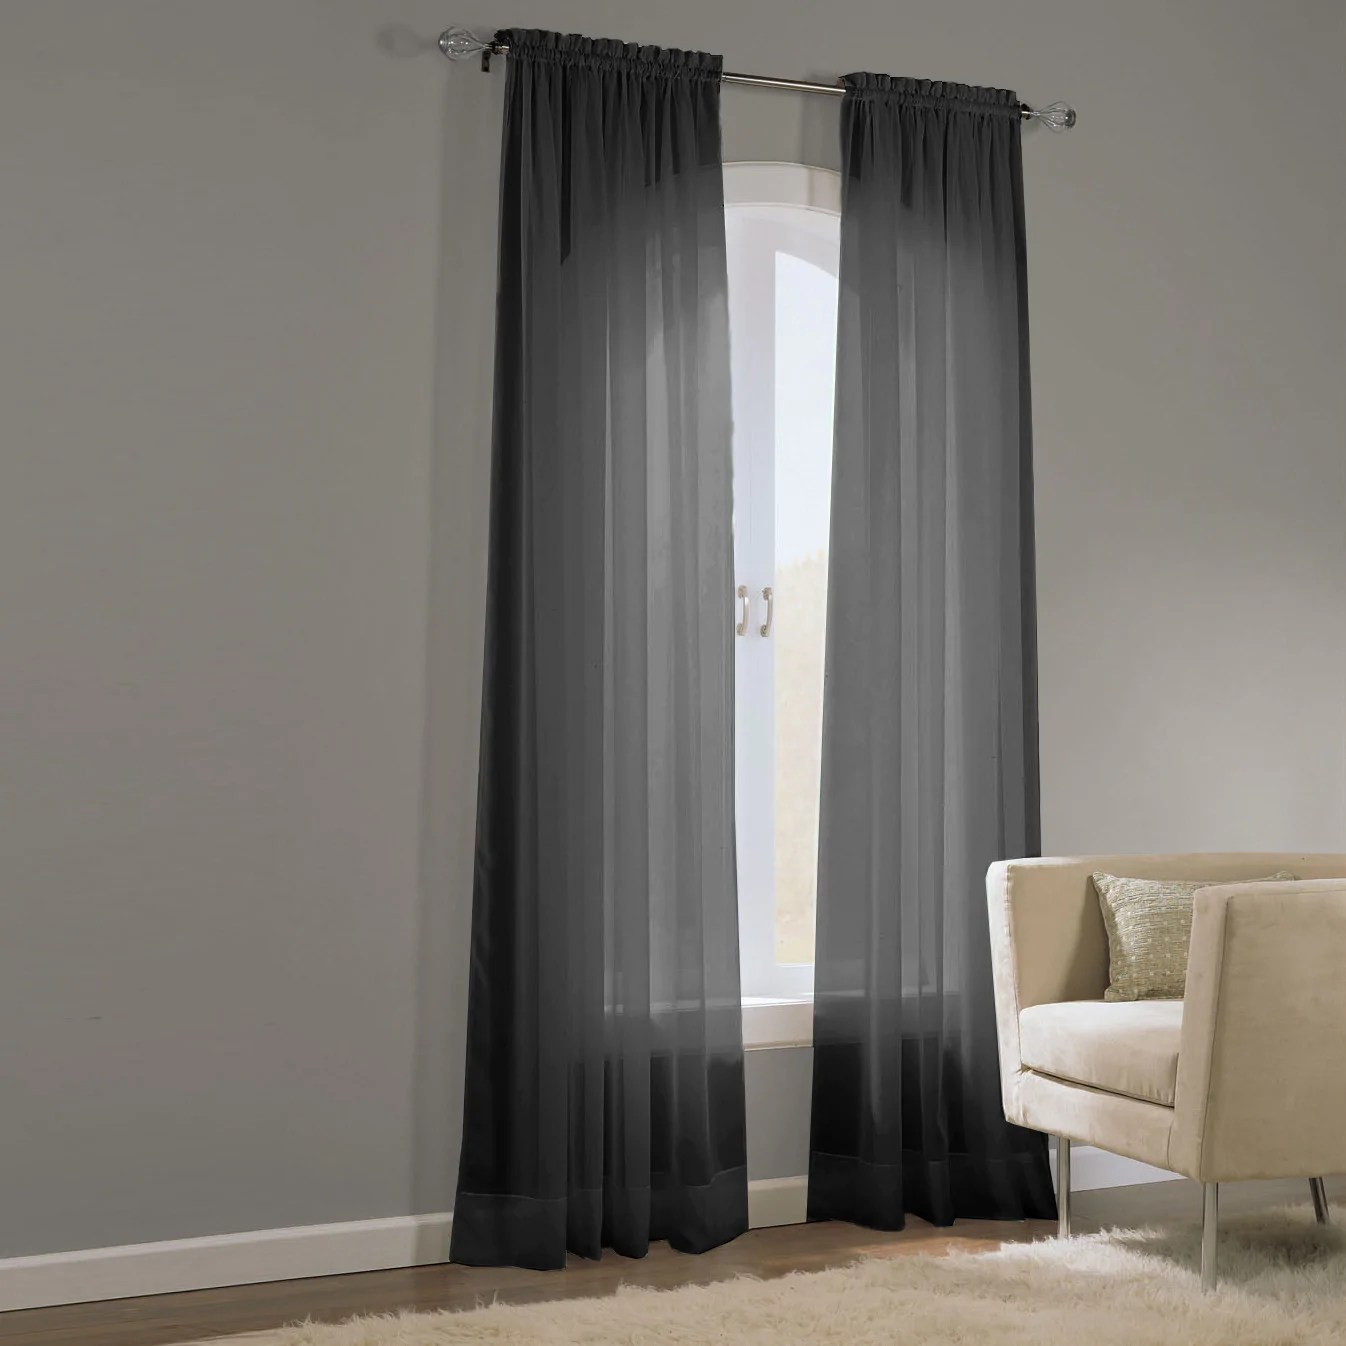 Black Voile Curtains Basic Elegance Voile Curtains Forever Linens